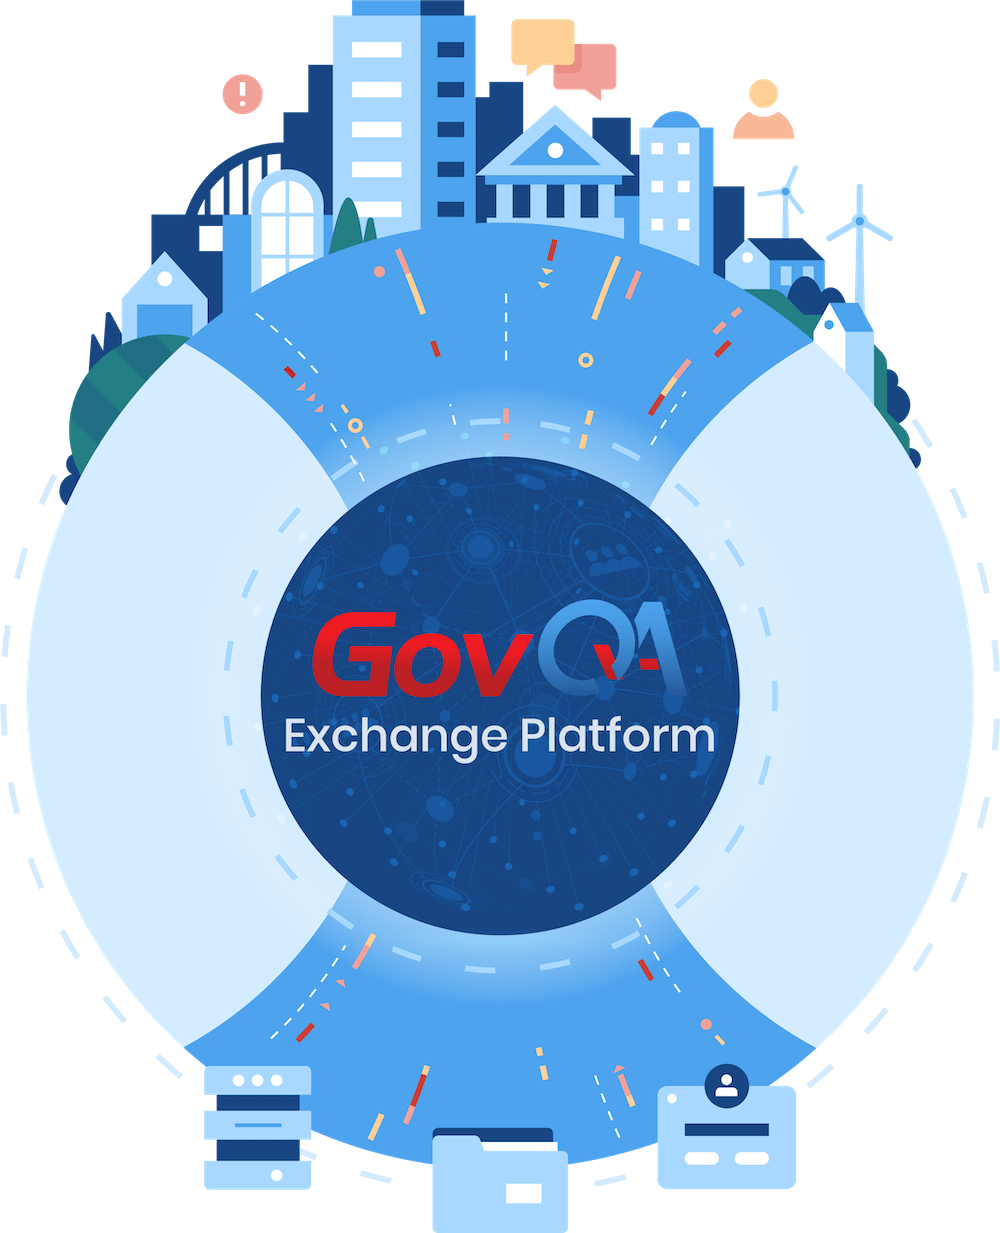 GovQA Exchange platform government workflow management animation